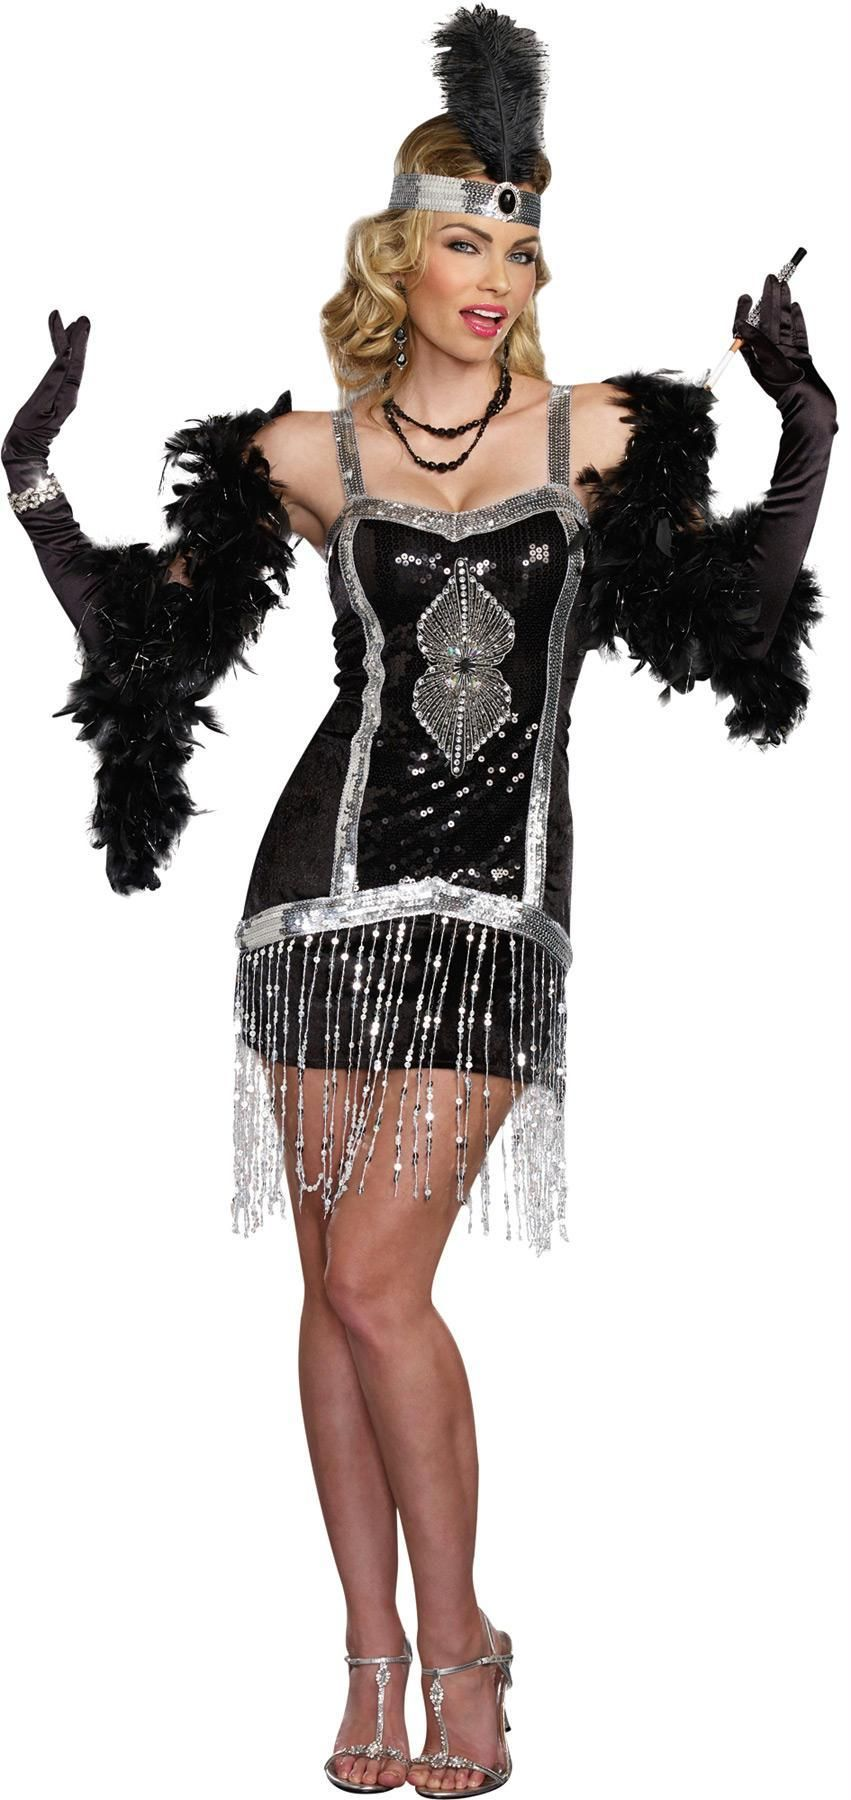 Simply Fab Costume in 2020 Costumes for women, Adult